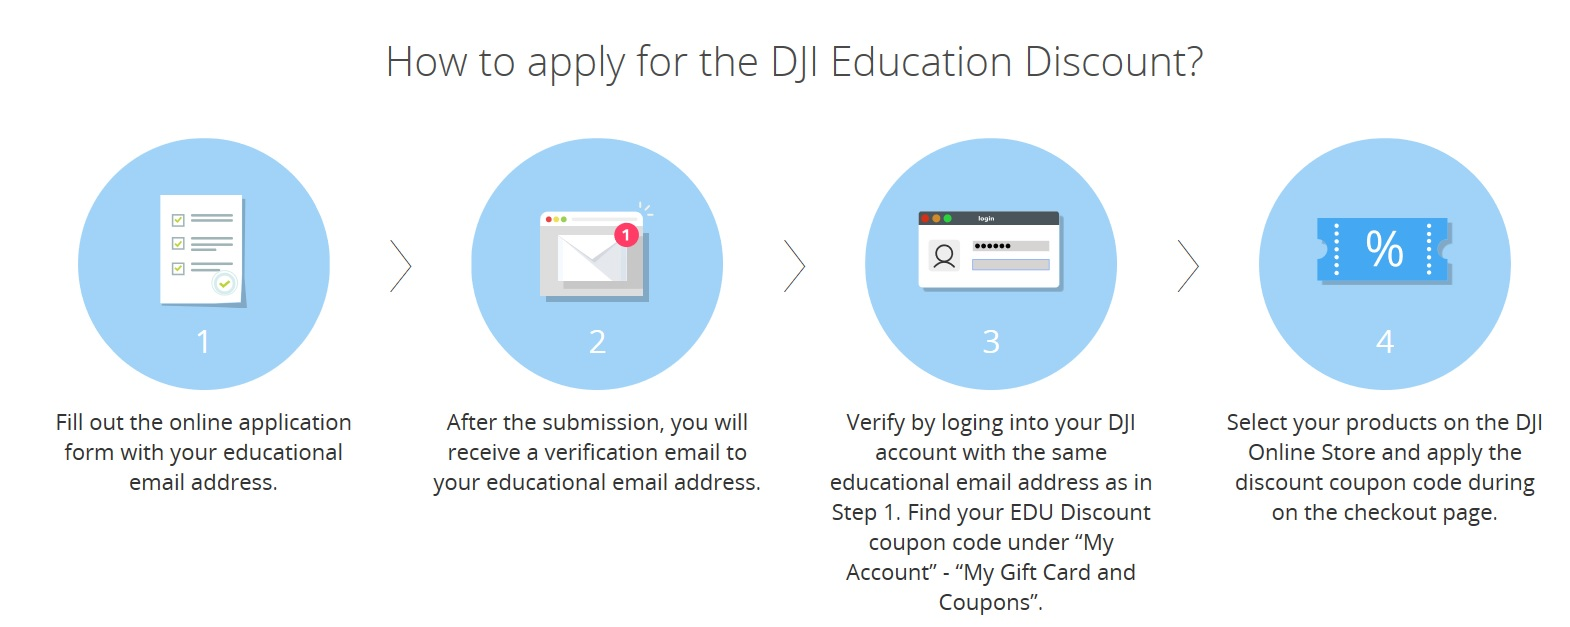 DJI Back to school How to apply